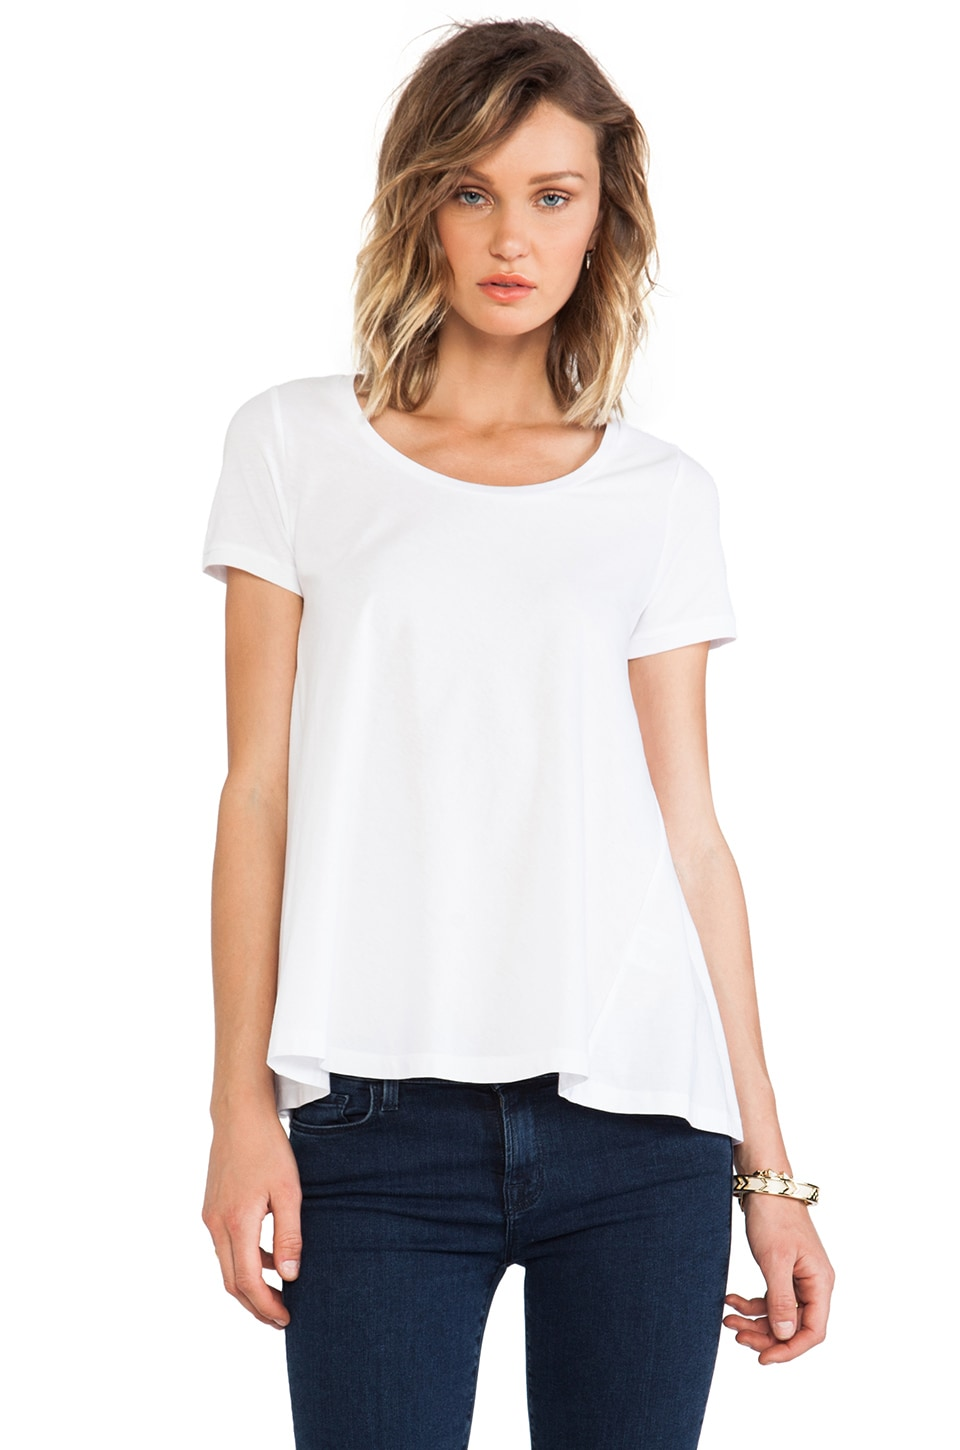 DemyLee Moss Tee in White